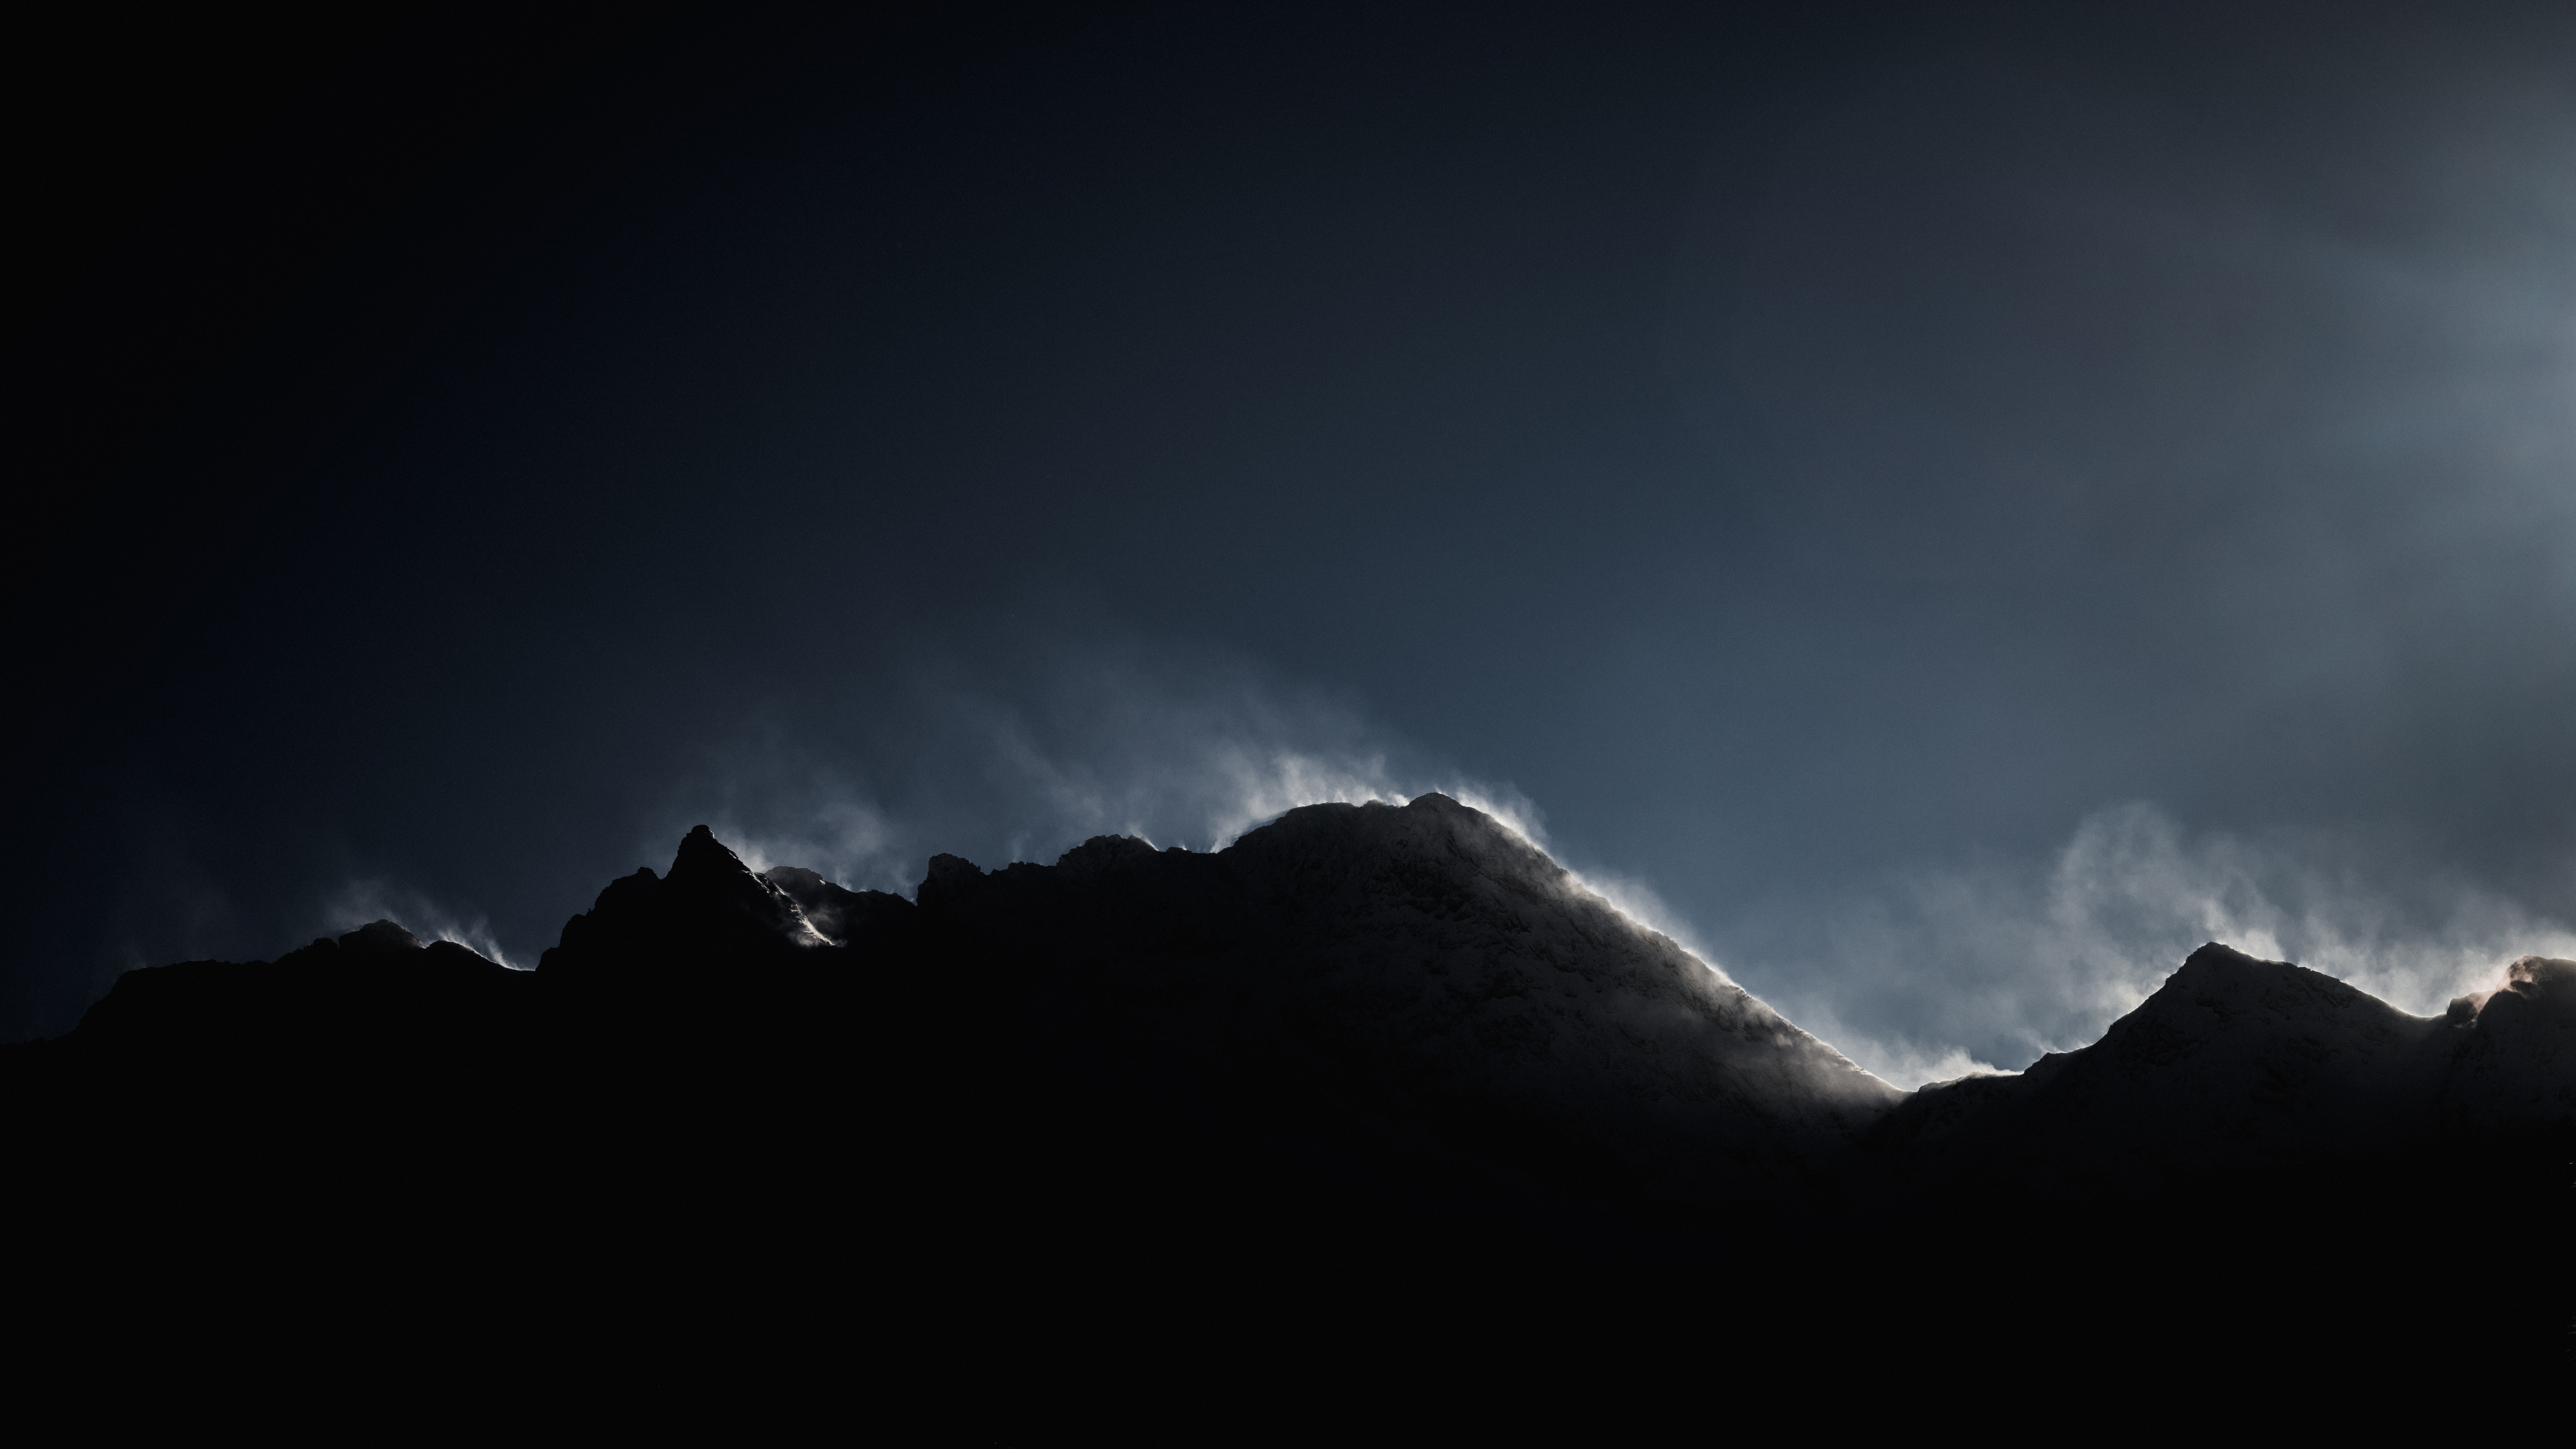 54010 download wallpaper Dark, Nature, Mountains, Vertex, Top, Fog, Shadow, Enveloping screensavers and pictures for free